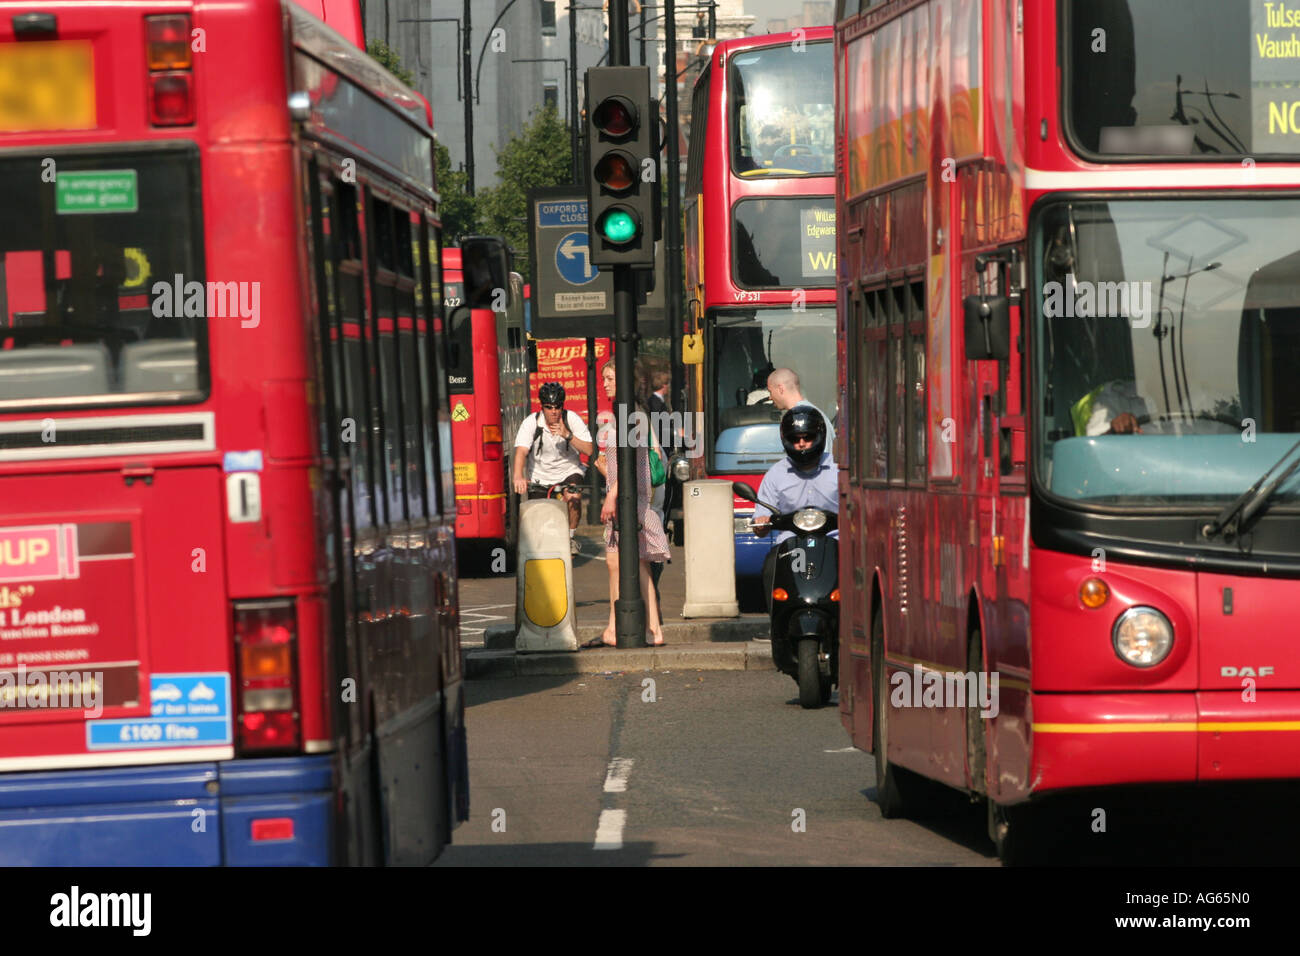 Bus traffic on Oxford Street in London UK - Stock Image